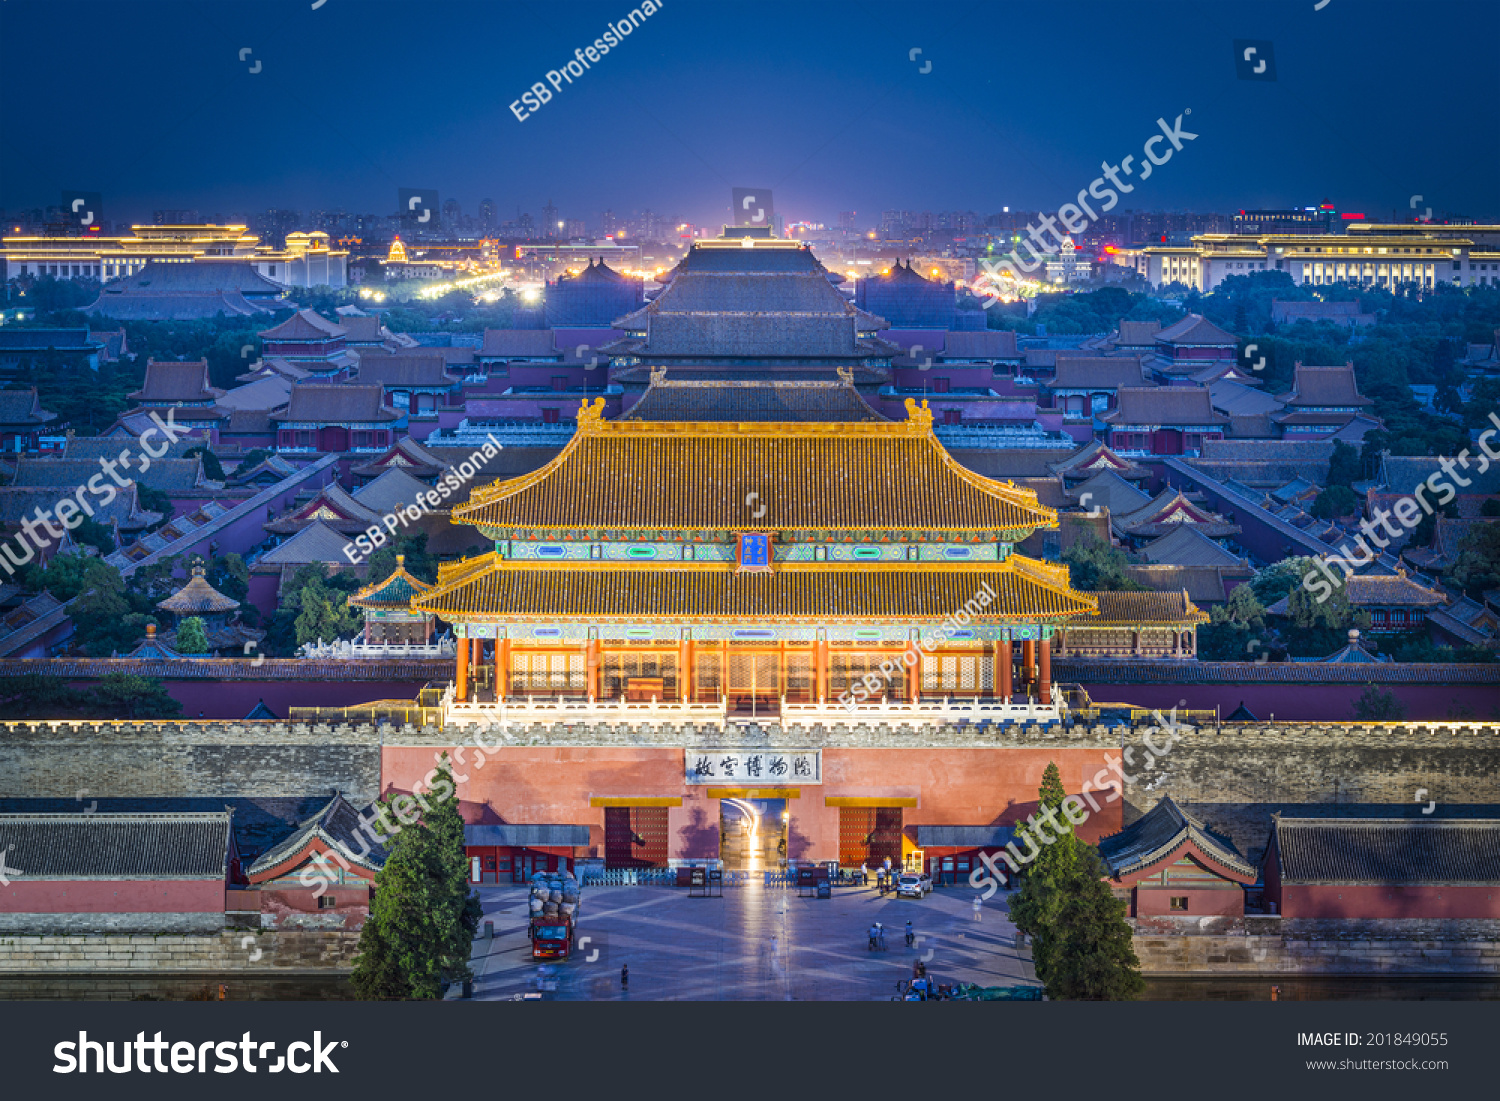 http://image.shutterstock.com/z/stock-photo-beijing-china-at-the-imperial-city-north-gate-201849055.jpg